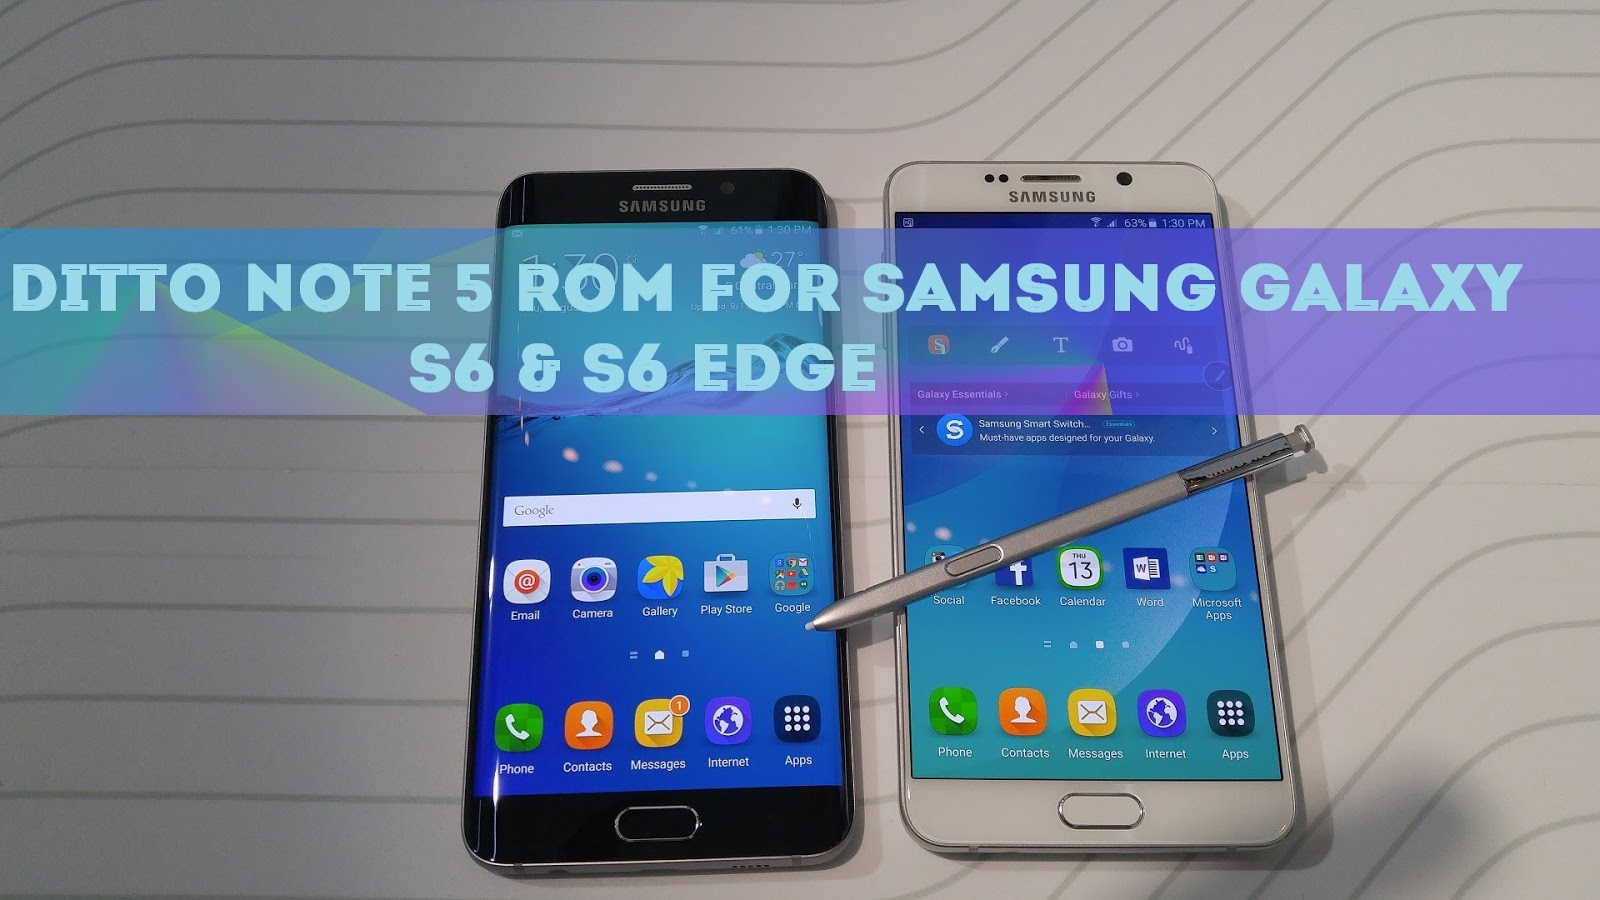 Ditto Note 5 (DN5) ROM For Samsung Galaxy S6 & S6 Edge